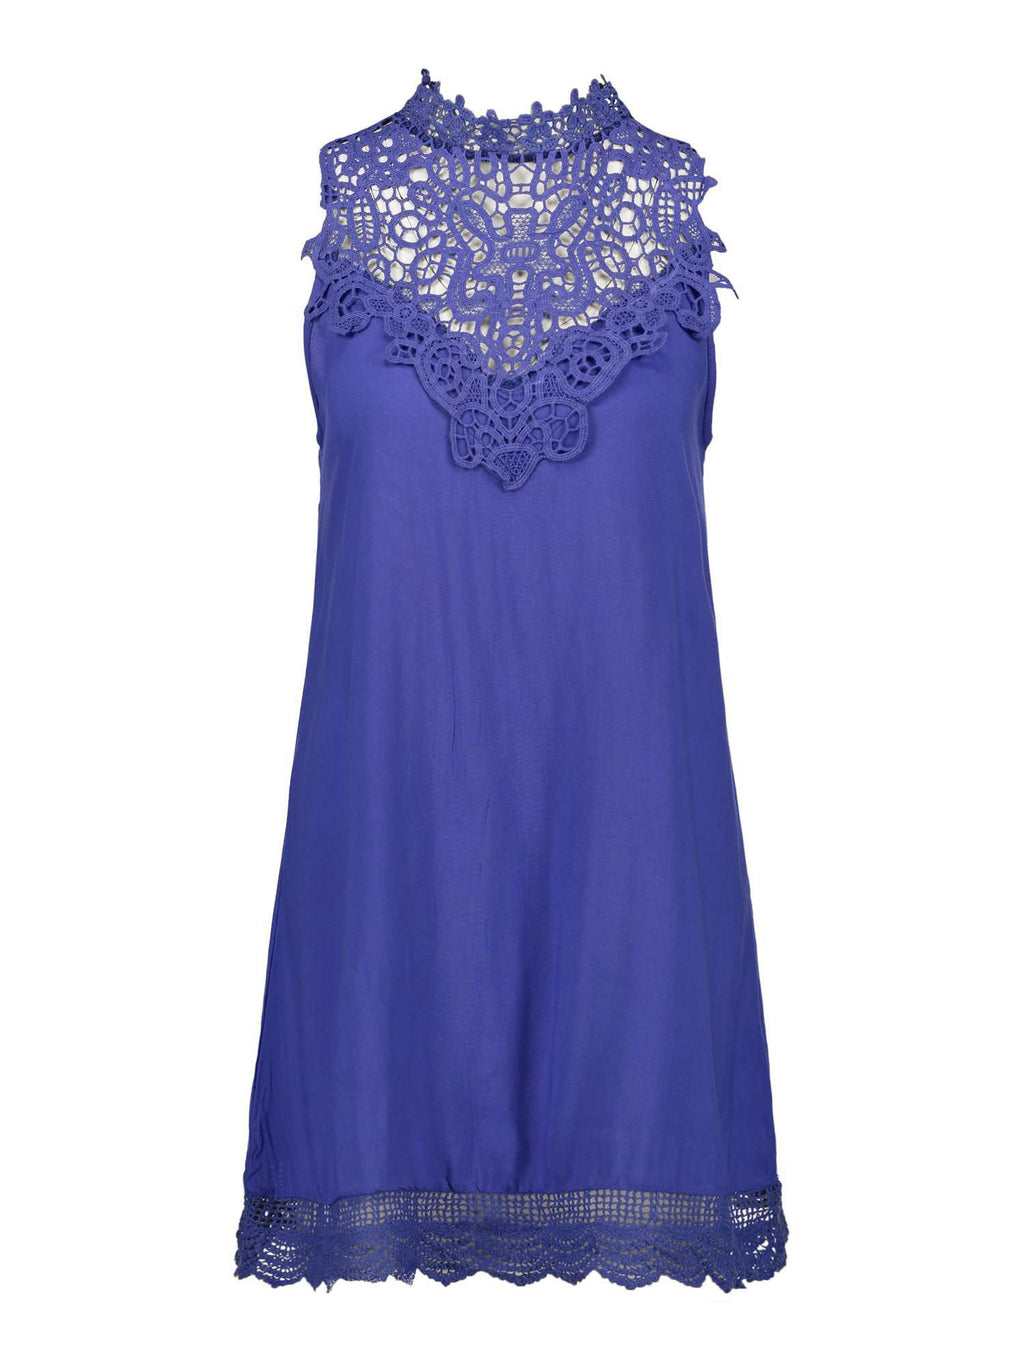 Lace-trimmed Sleeveless Dress